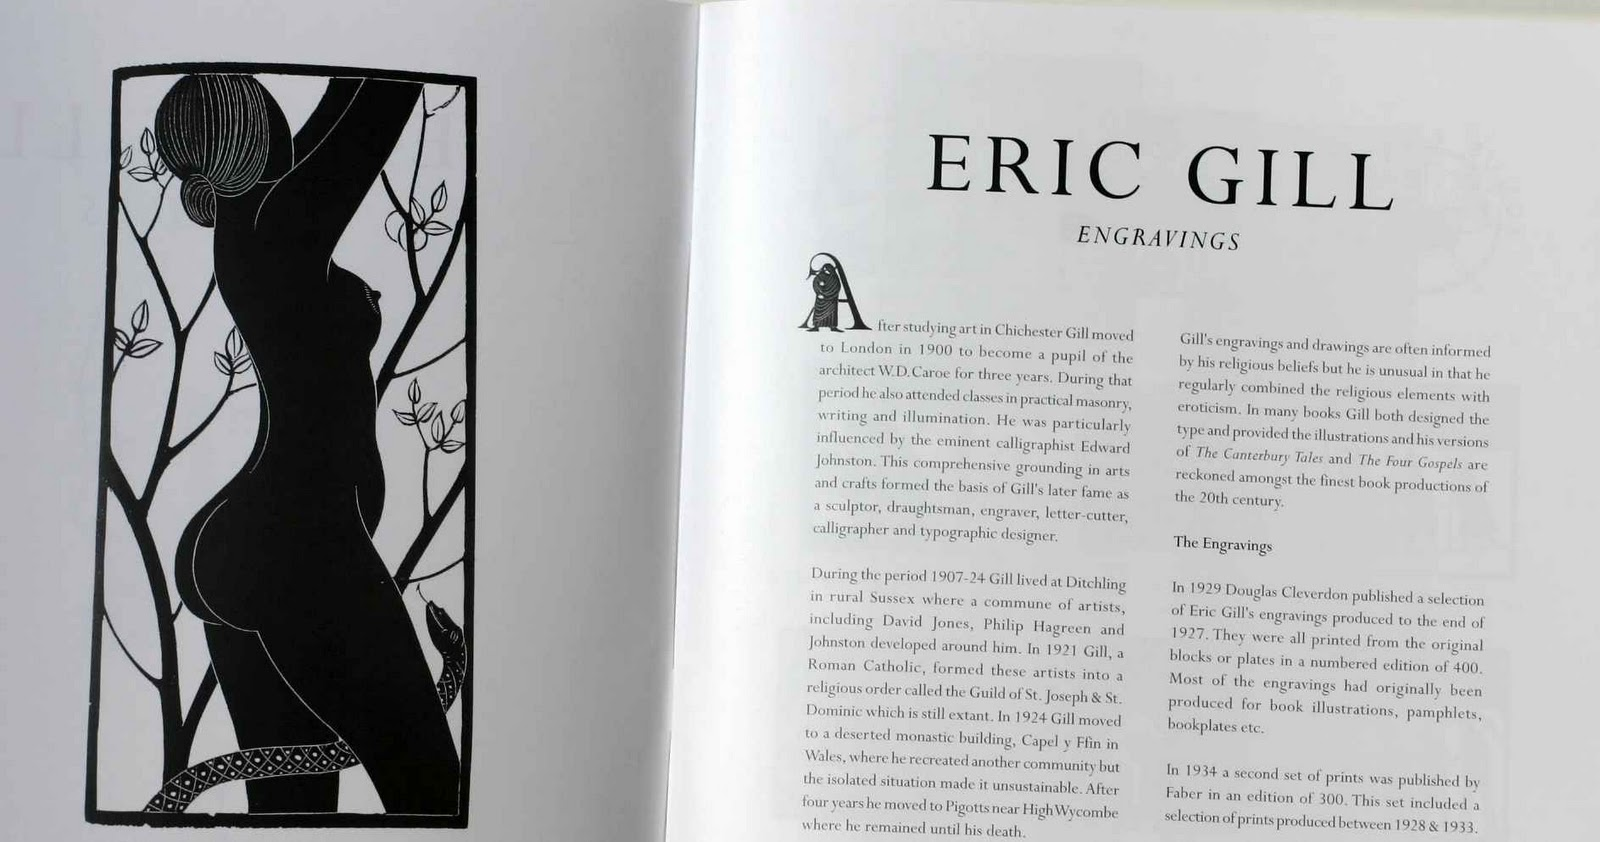 the life and path towards graphic designing of eric gill Lettering: the work of eric gill, edward johnston and douglas/hilary pepler i am a great admirer of the stone letter carving work of eric gill, the acknowledged master of that craft.